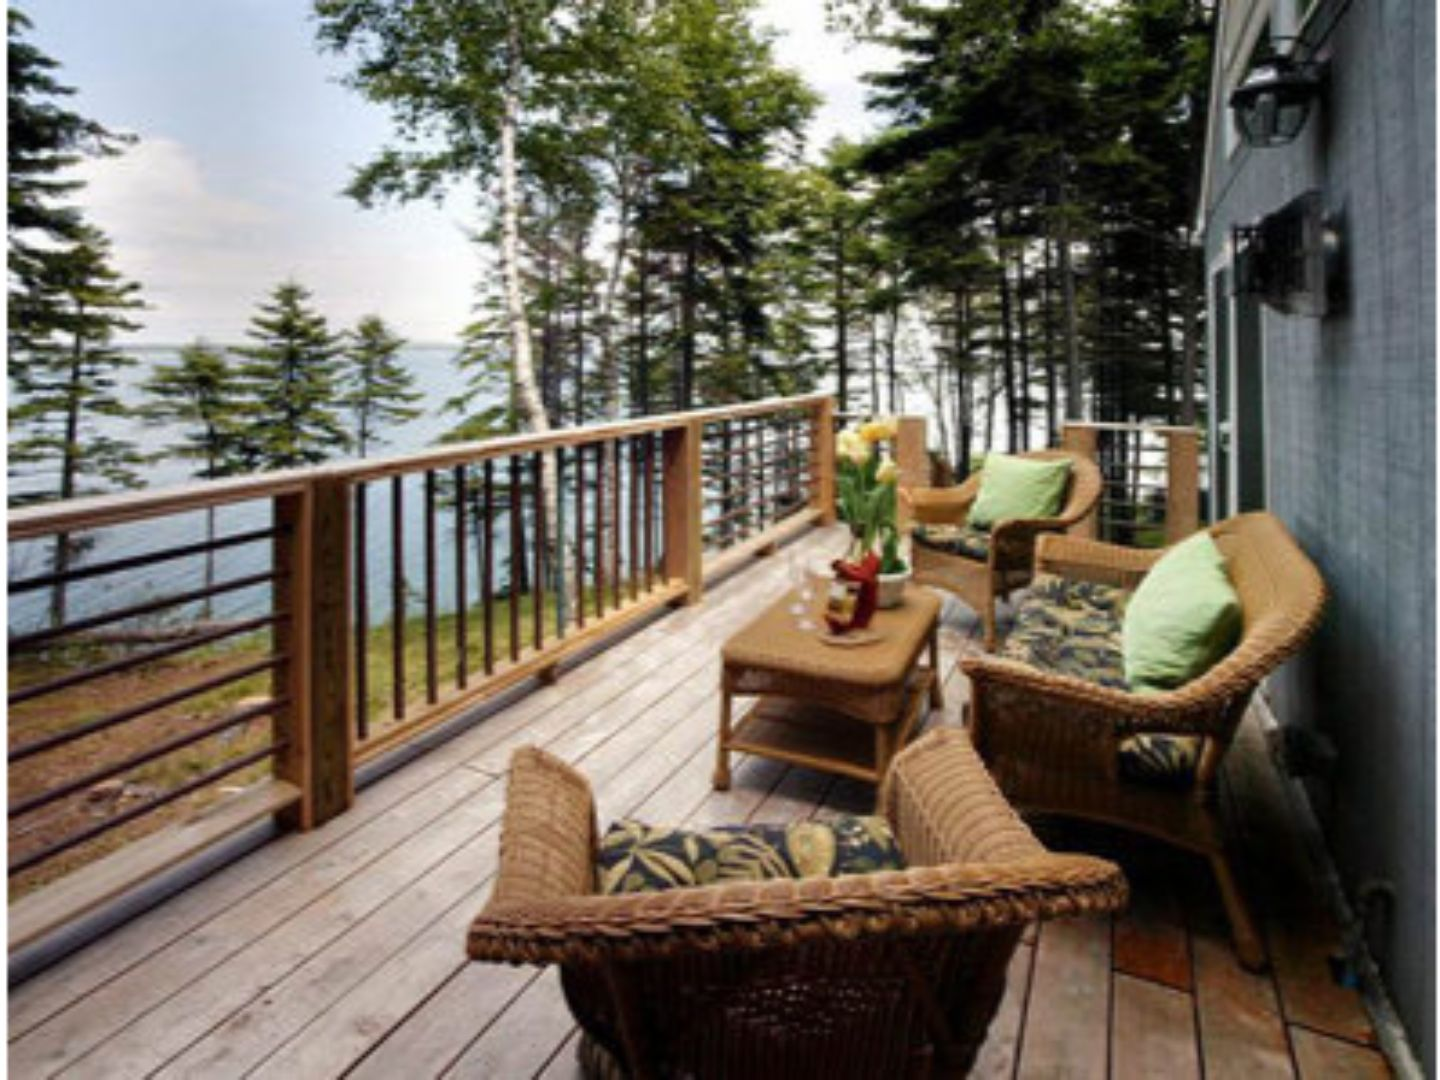 A living room with a wooden fence at Inn at Bay Ledge.